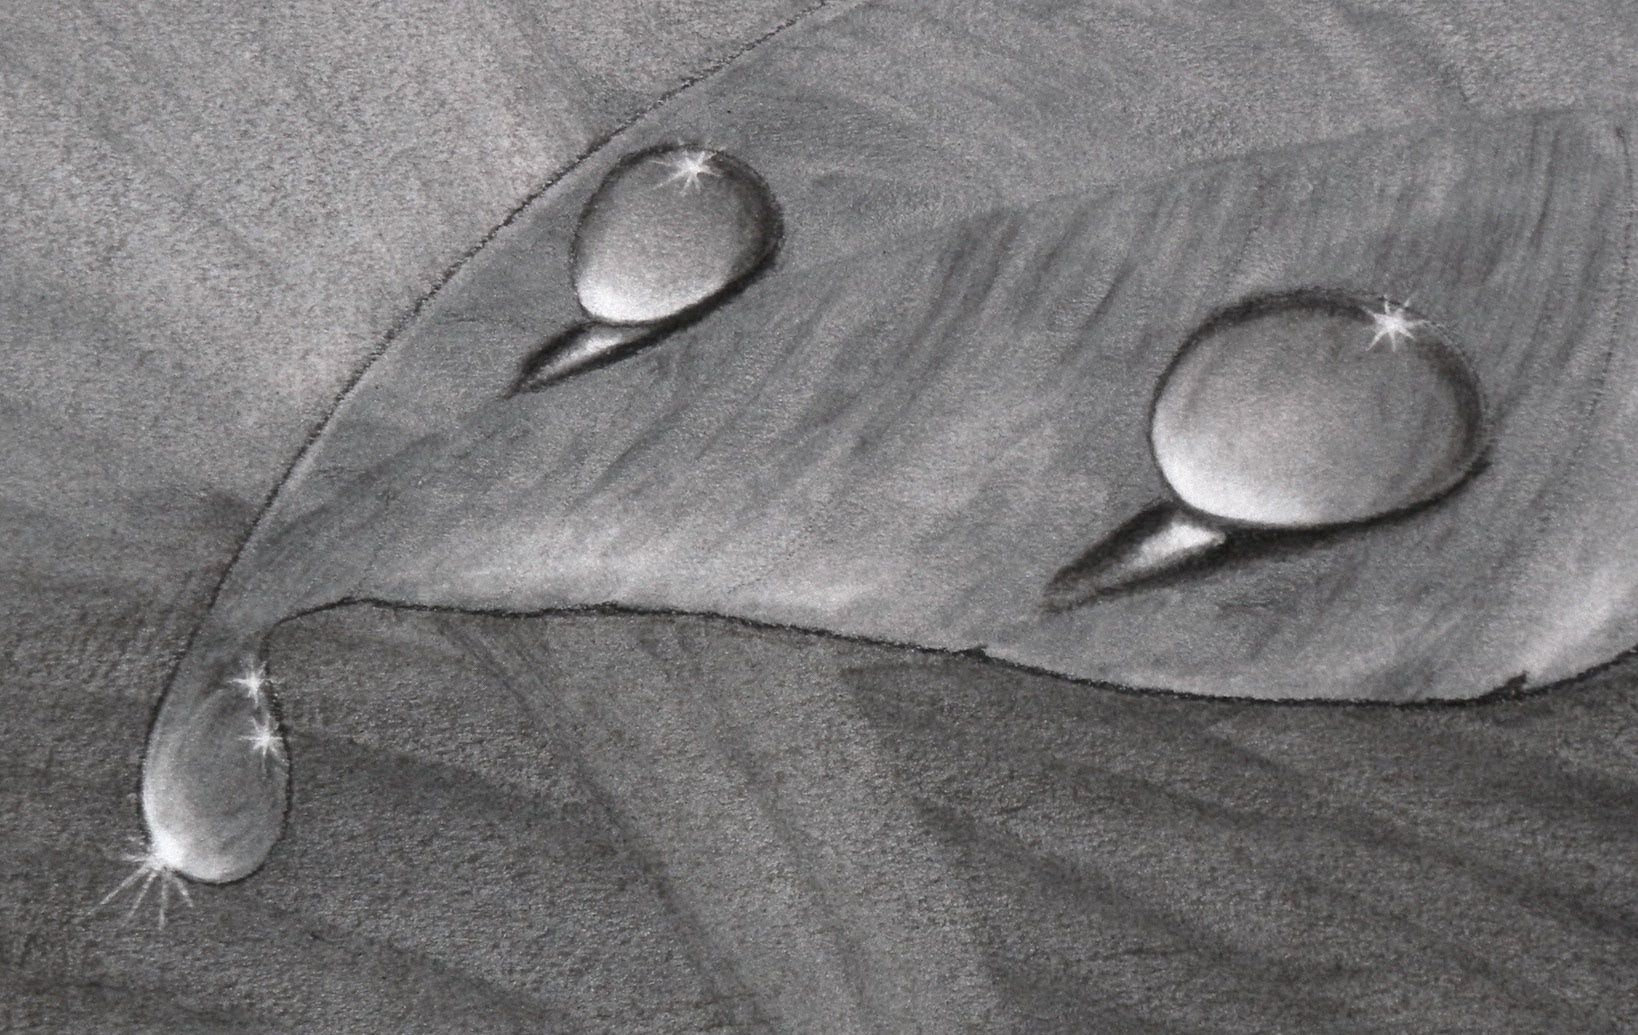 How to draw water drops with charcoal also has interesting tips on accurately observing water drops